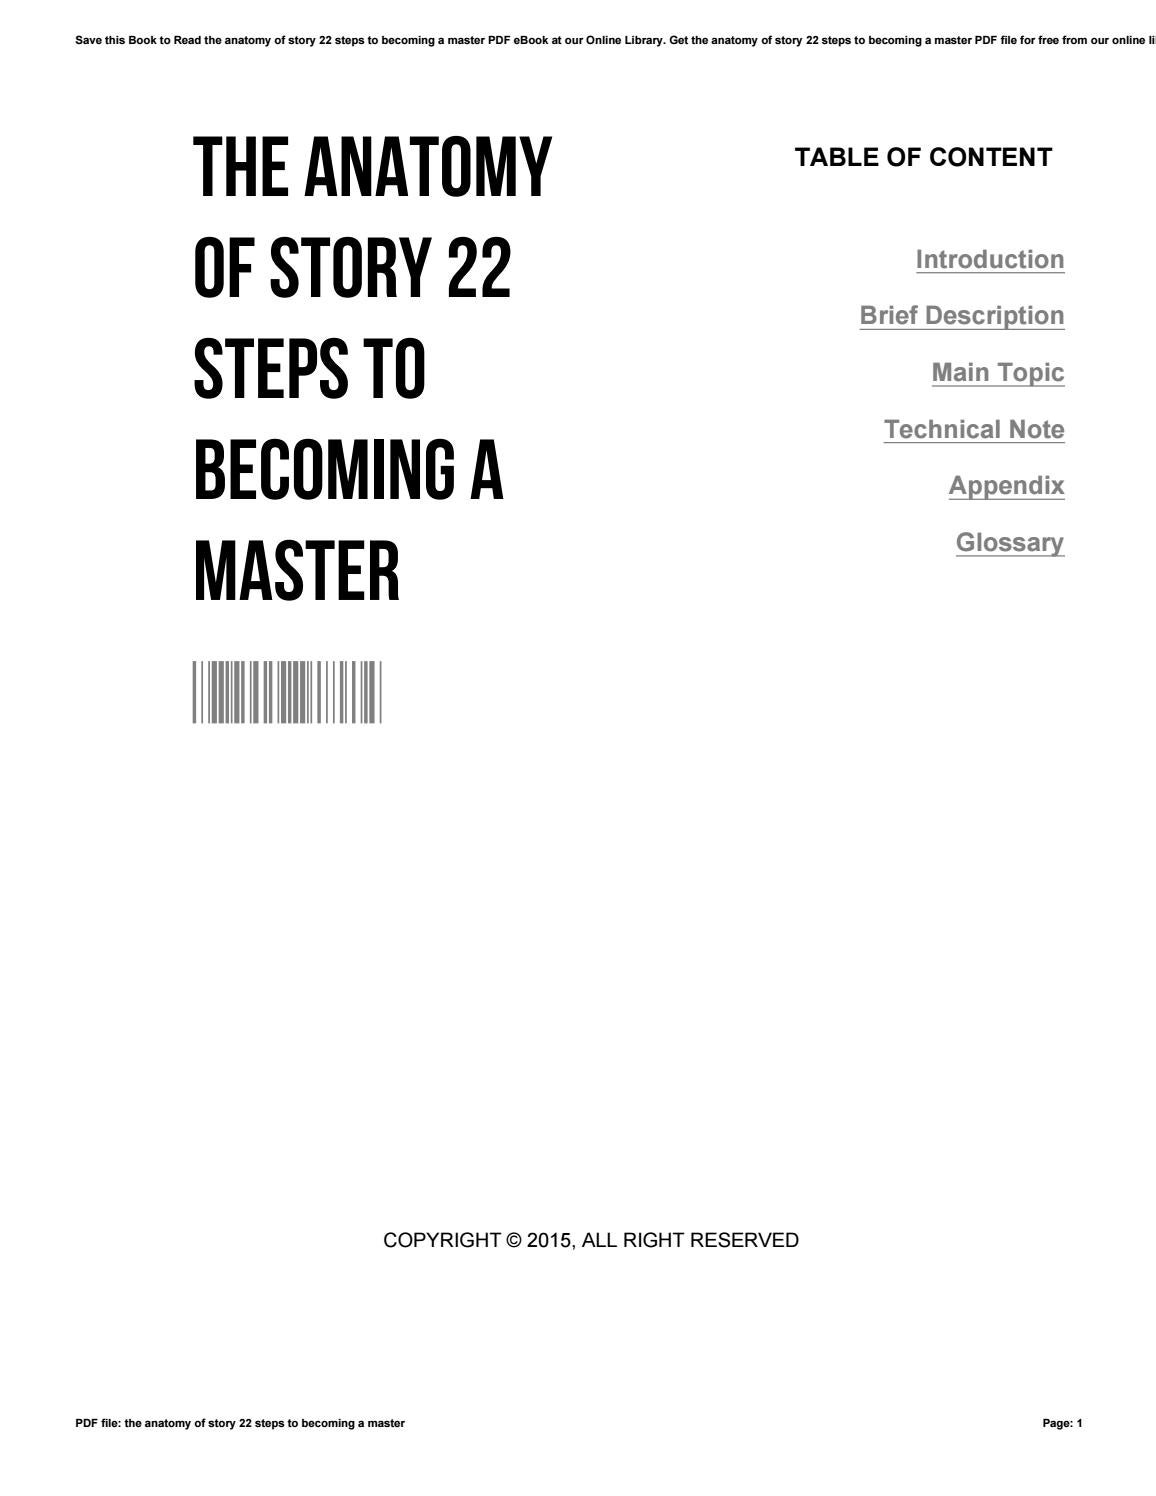 The Anatomy Of Story 22 Steps To Becoming A Master By